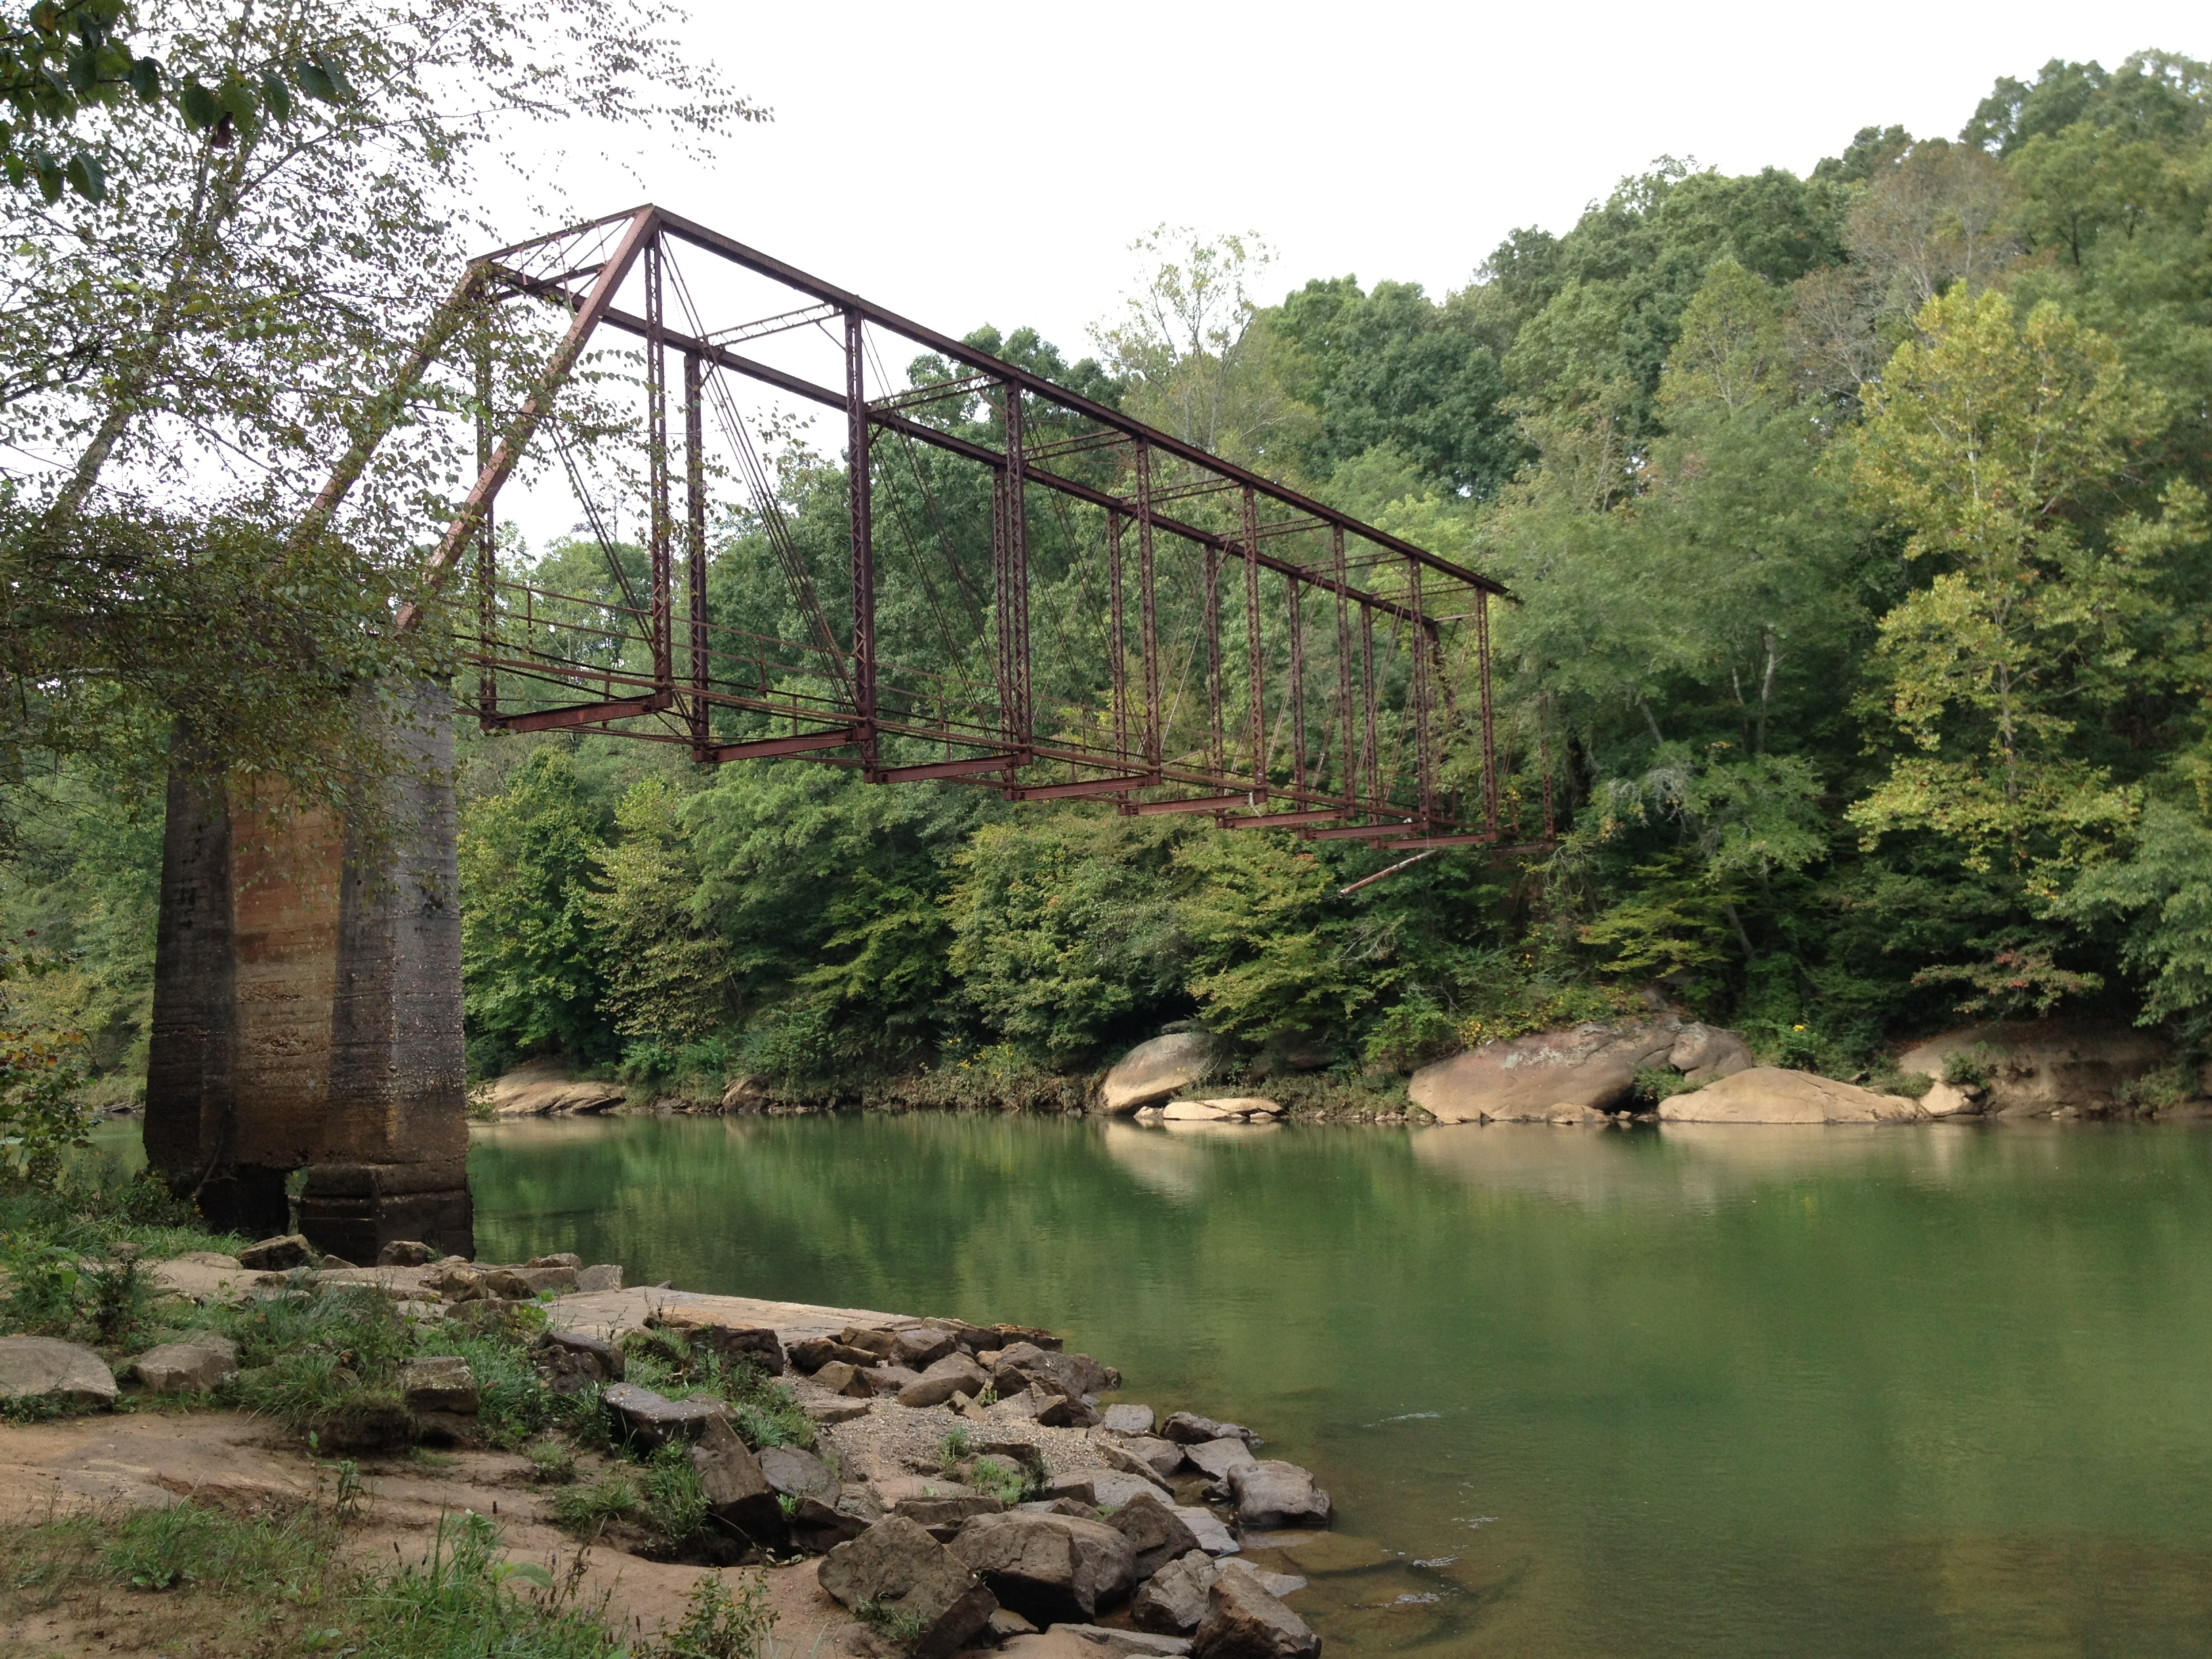 The waters of Settles Bridge Park are beautiful but perpetually chilly.